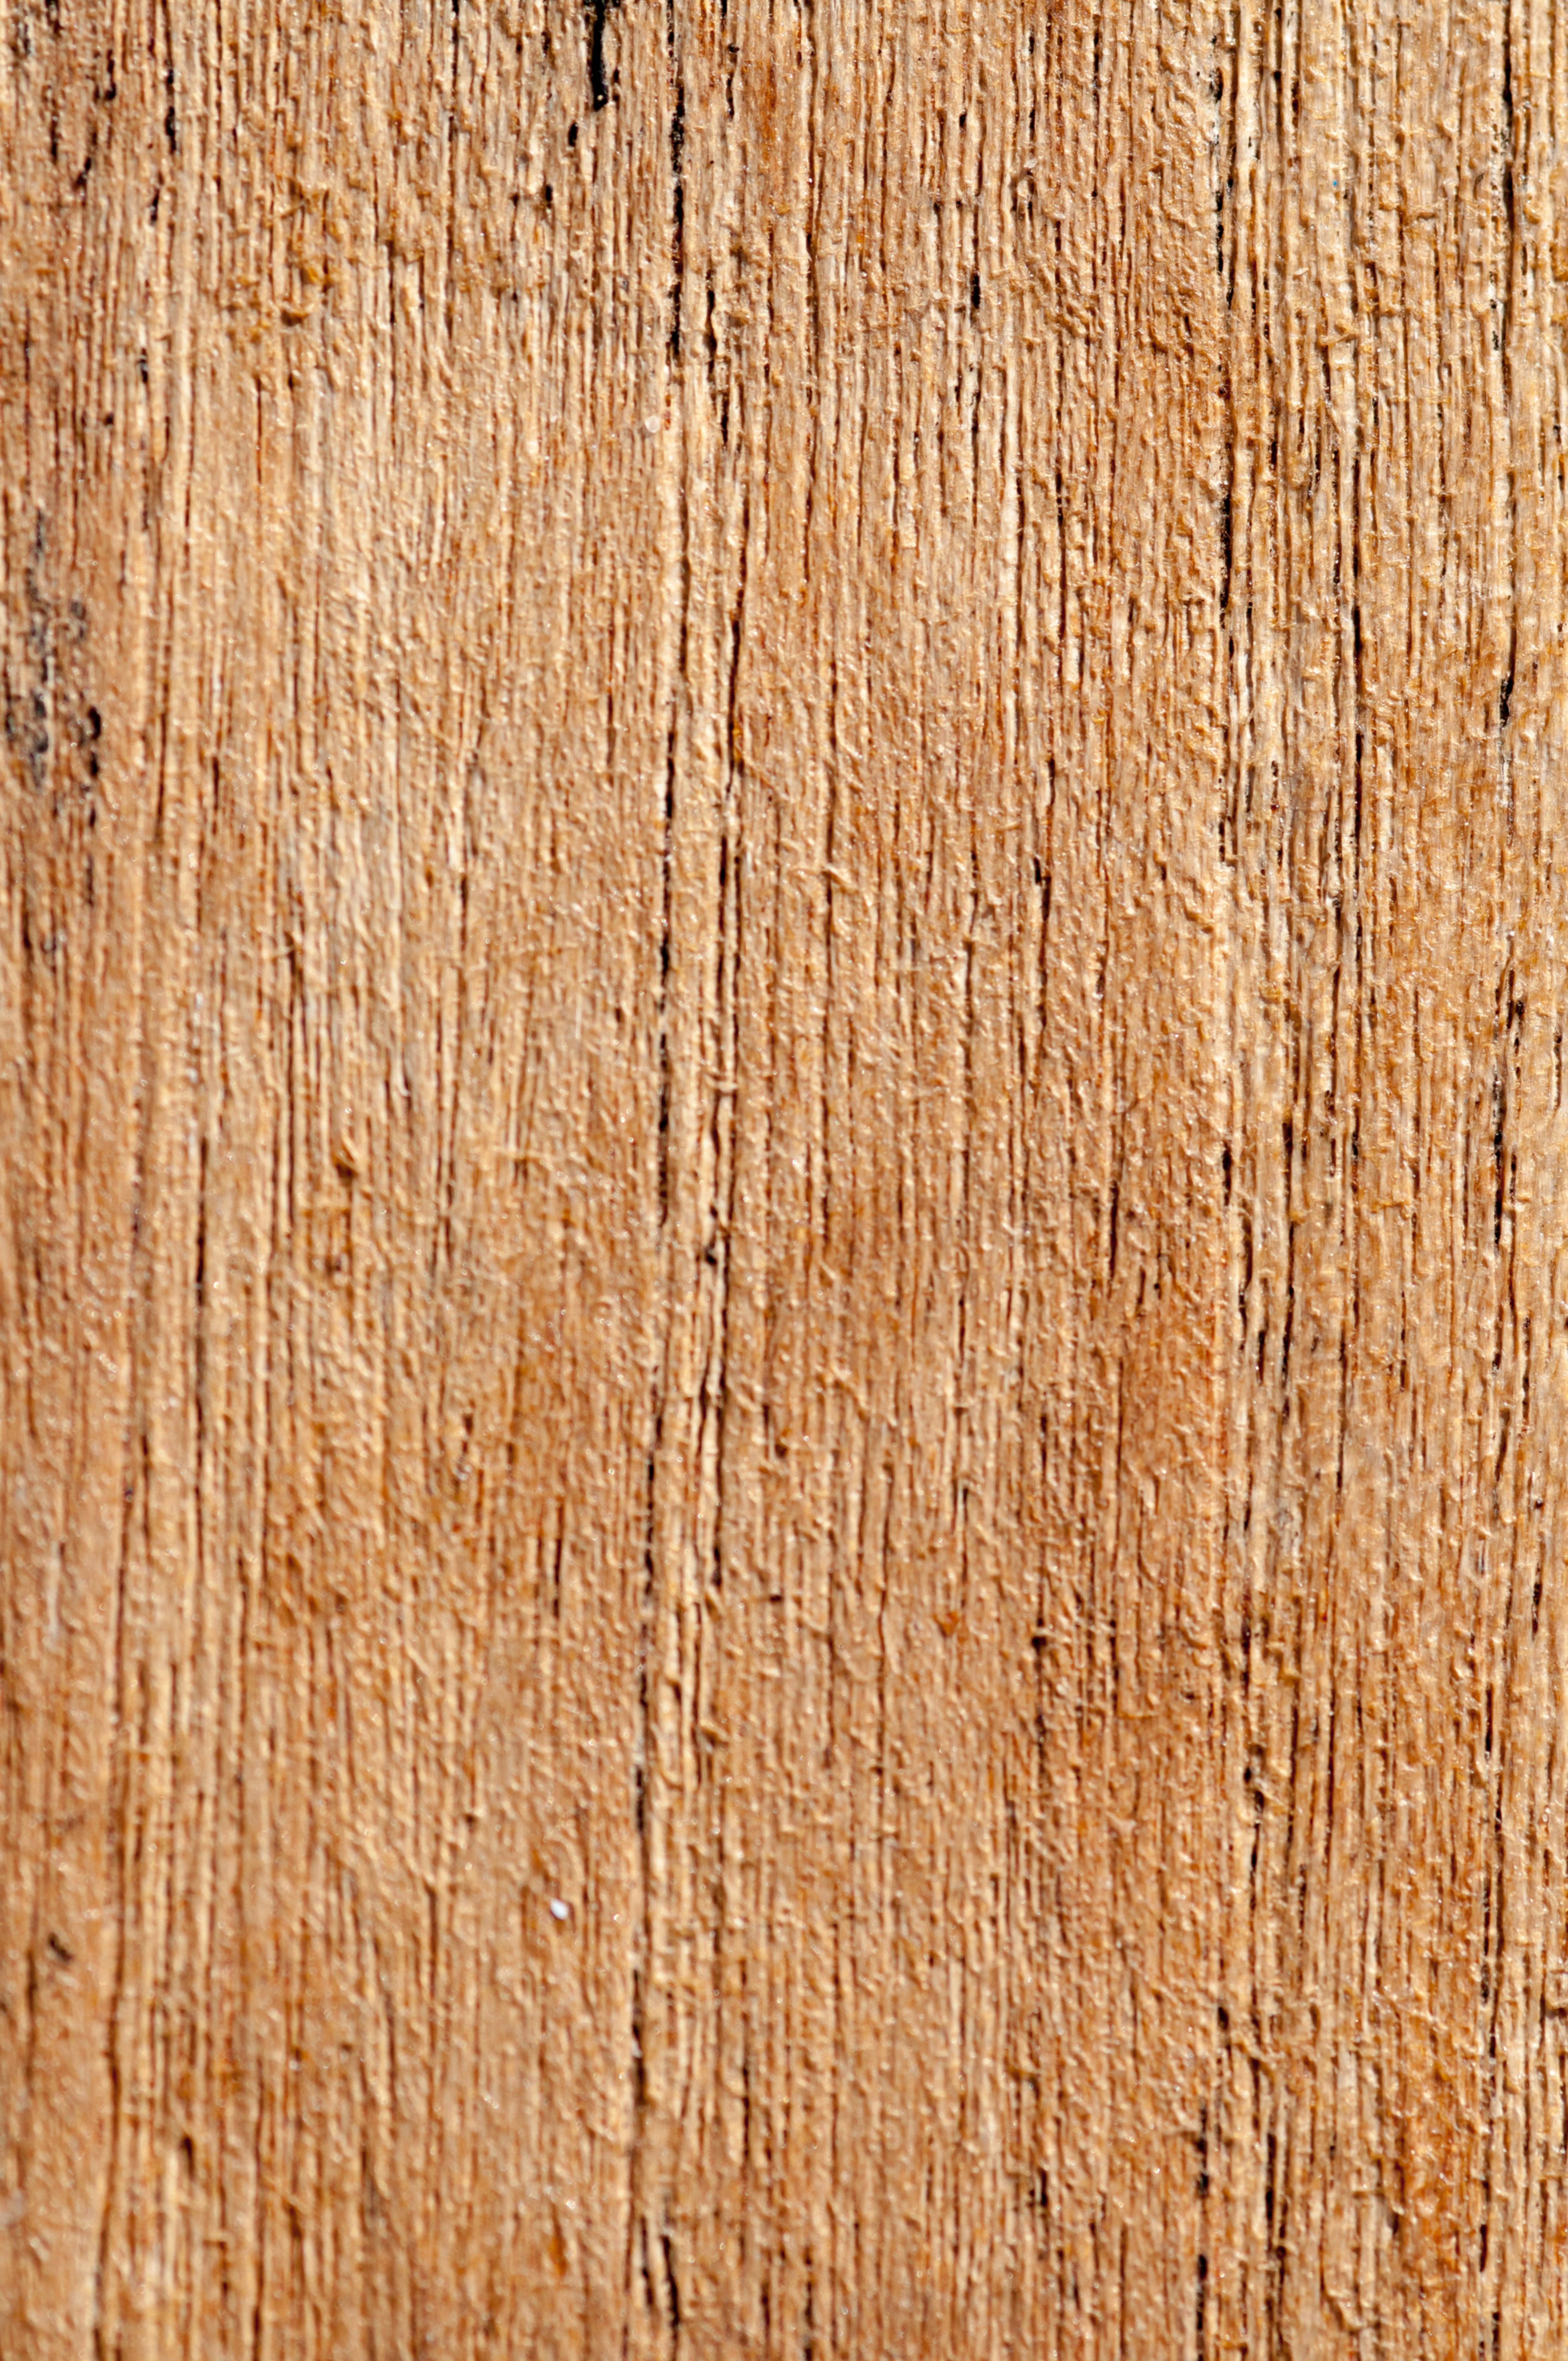 Blank pattern Wood Texture Close-Up